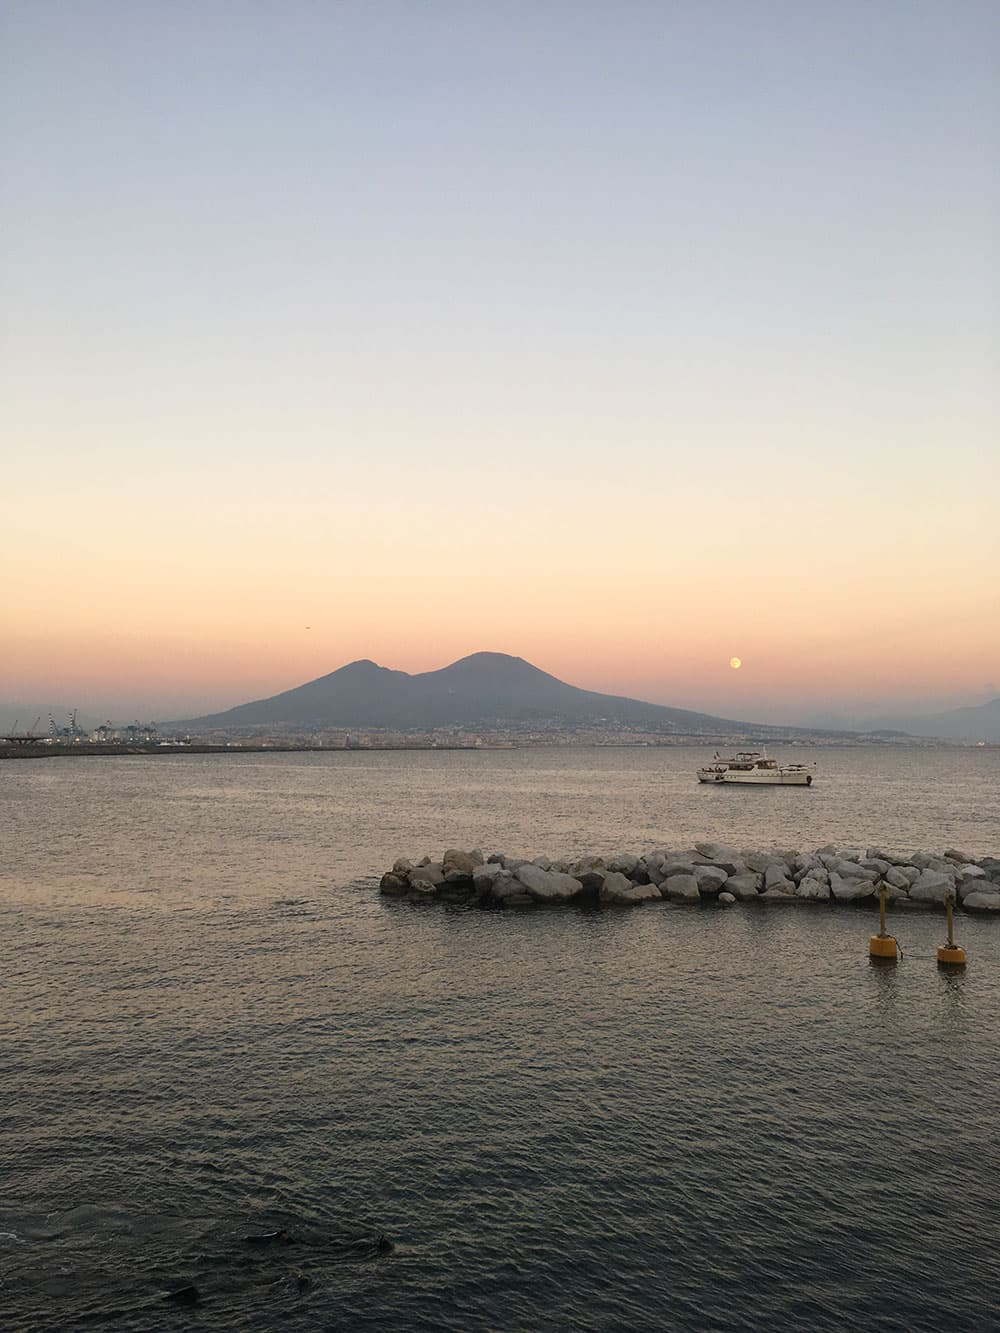 Sunset with moon above Mount Vesuvius